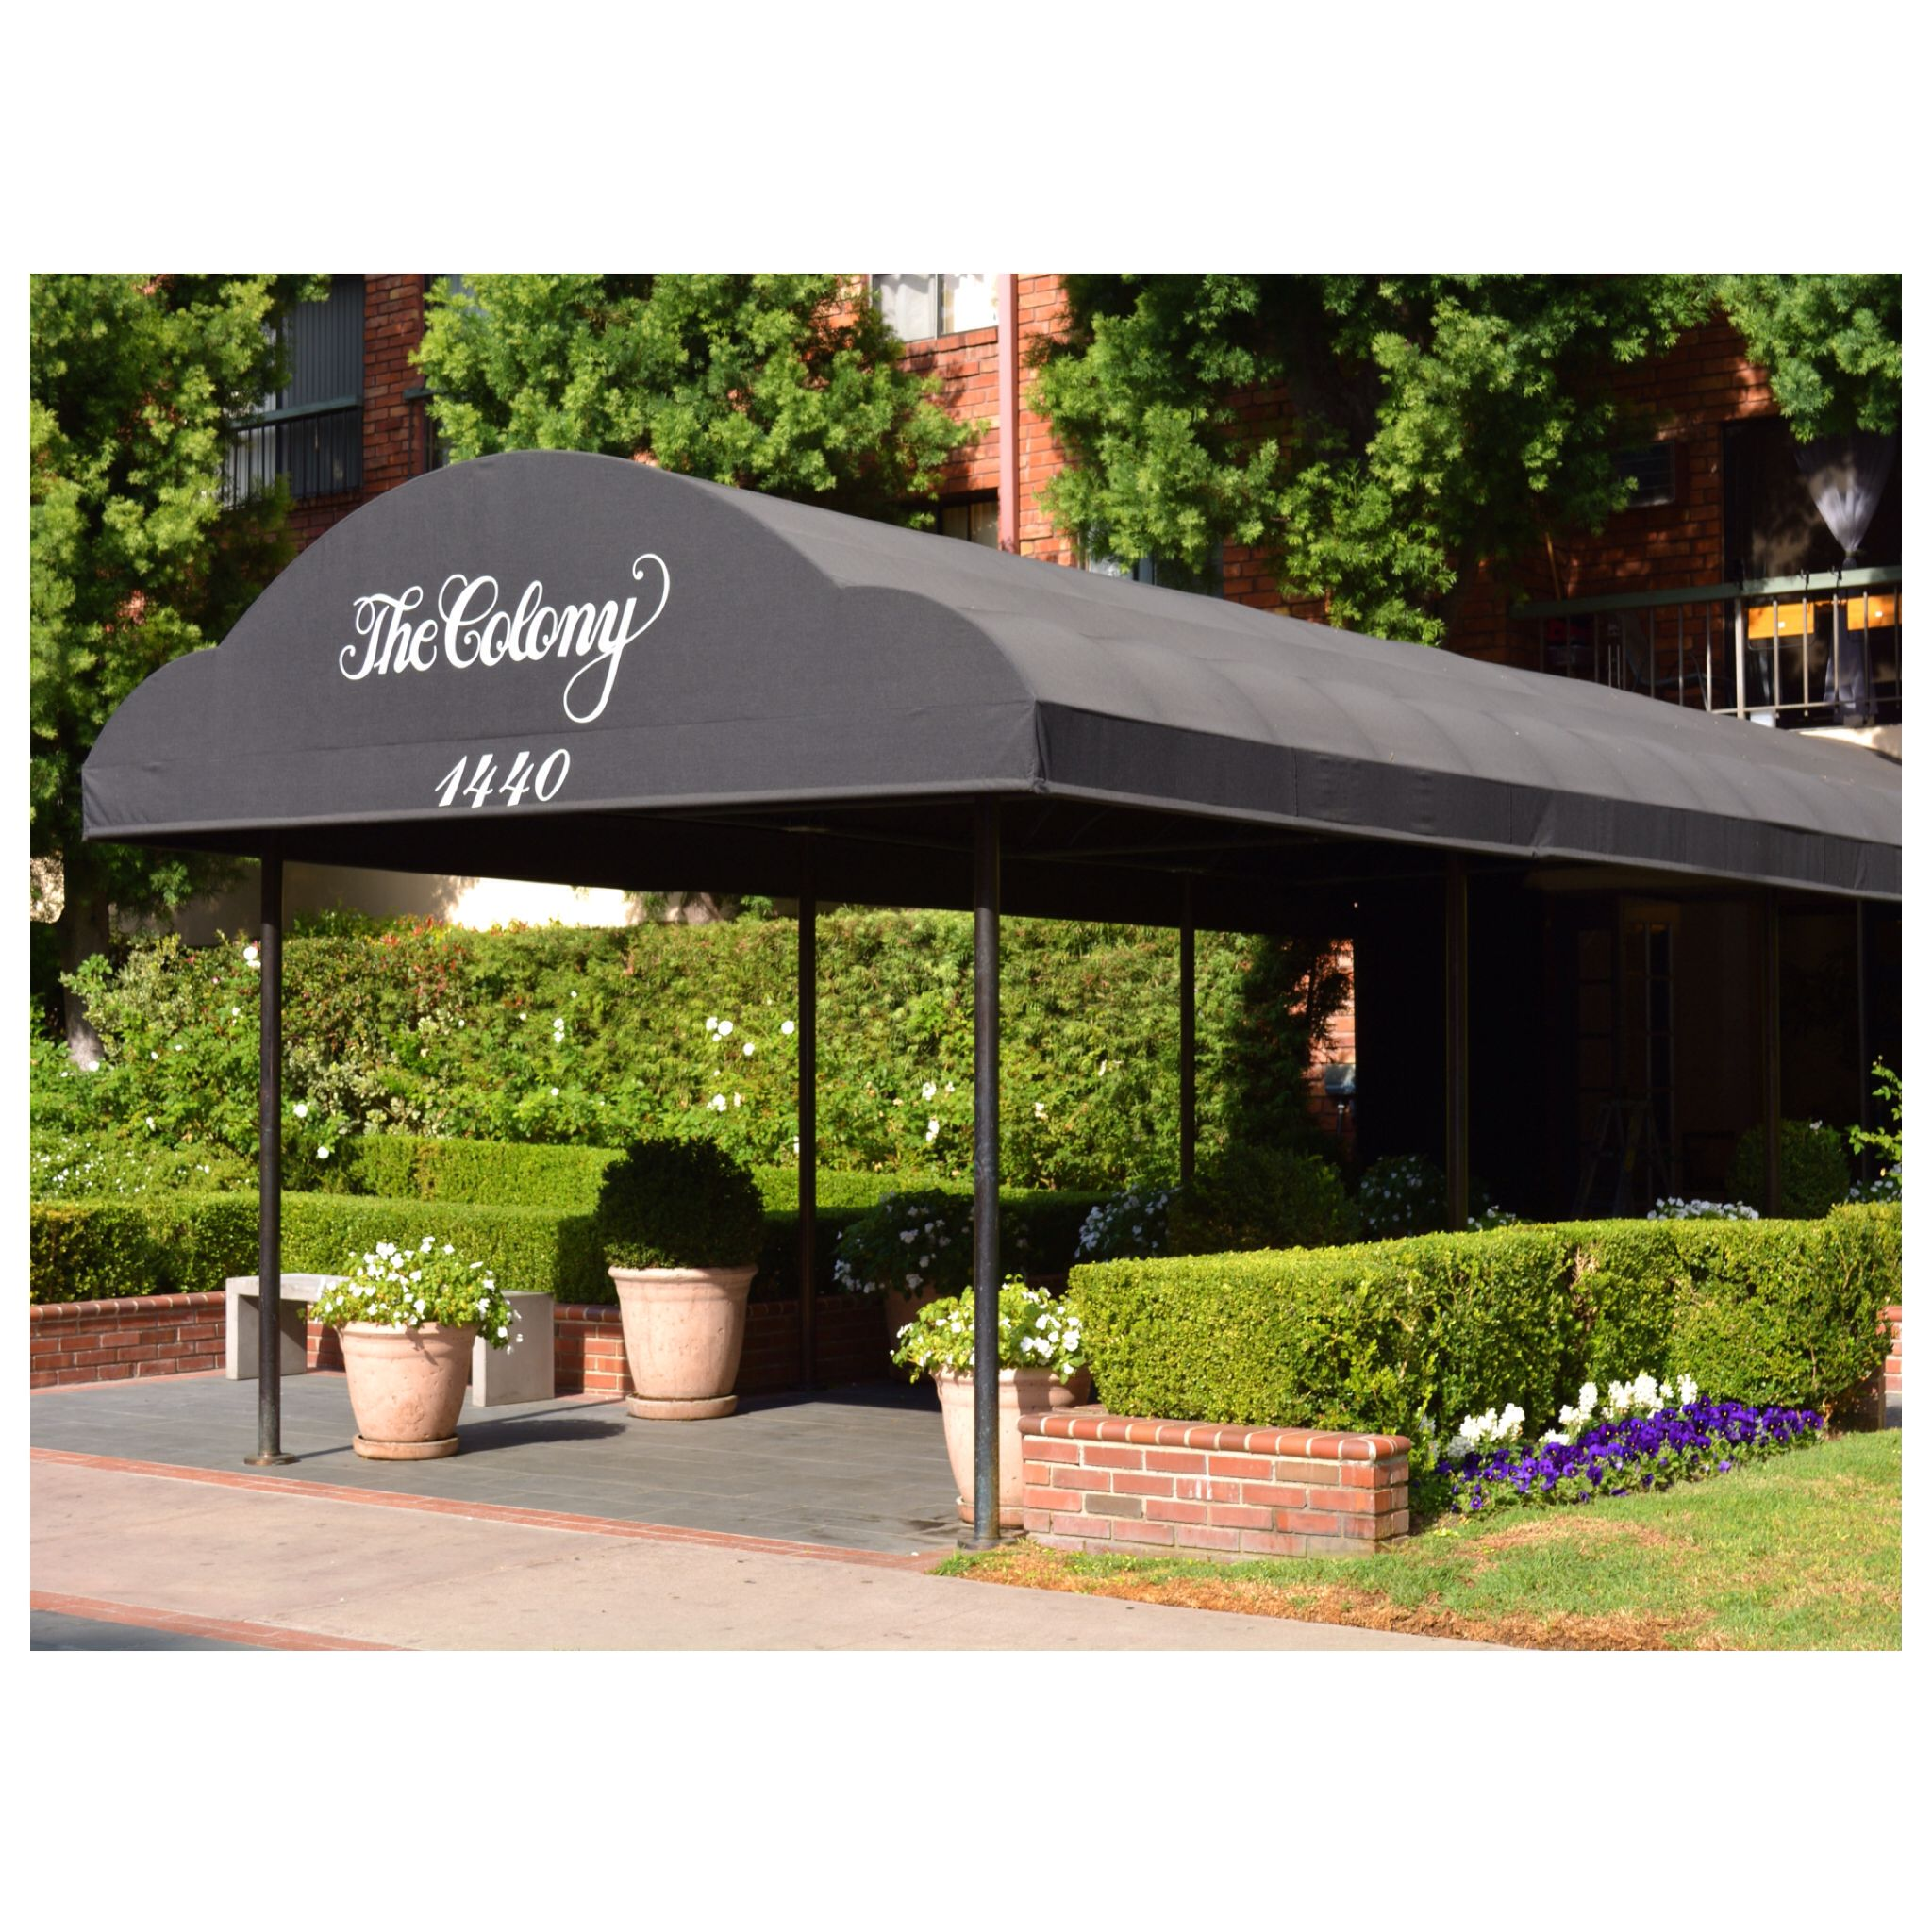 version ideas awning diy shade aluminum awnings grommets deck eclissi slats wire and sunshade pergola pergolas hanging with beautiful homemade design mobile cover sun open patios backyard retractable louvers